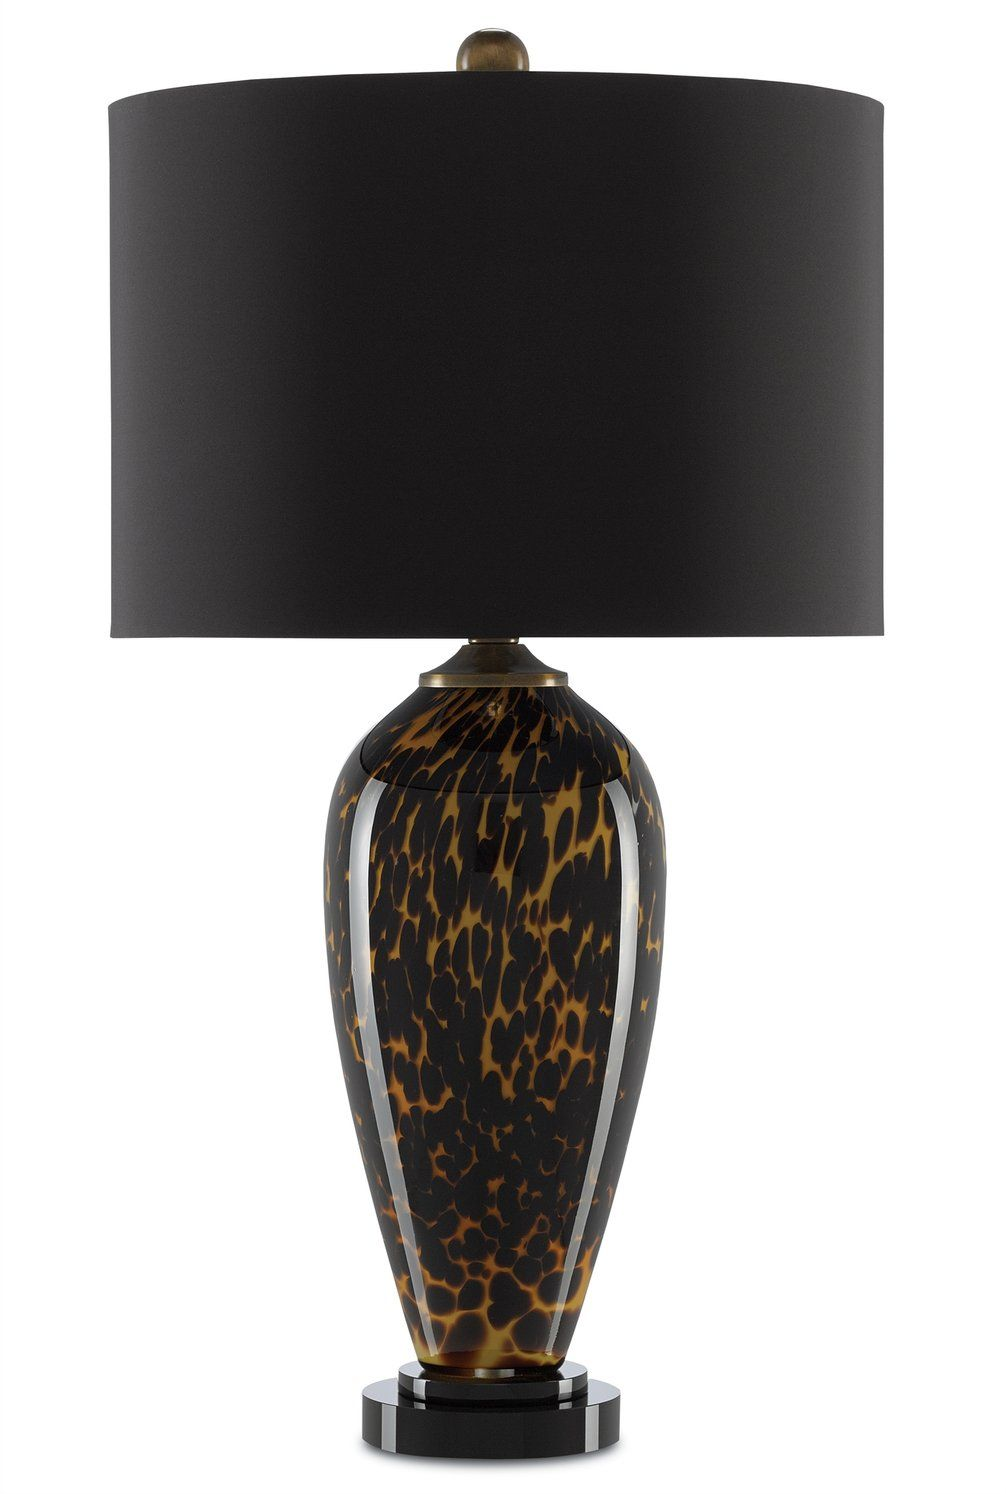 The Ninon Table Lamp From Currey And Company Showcases A Tortoise Shell Finish On Glass The Deep Orange That Spreads Along The Sur Lamp Table Lamp Modern Lamp